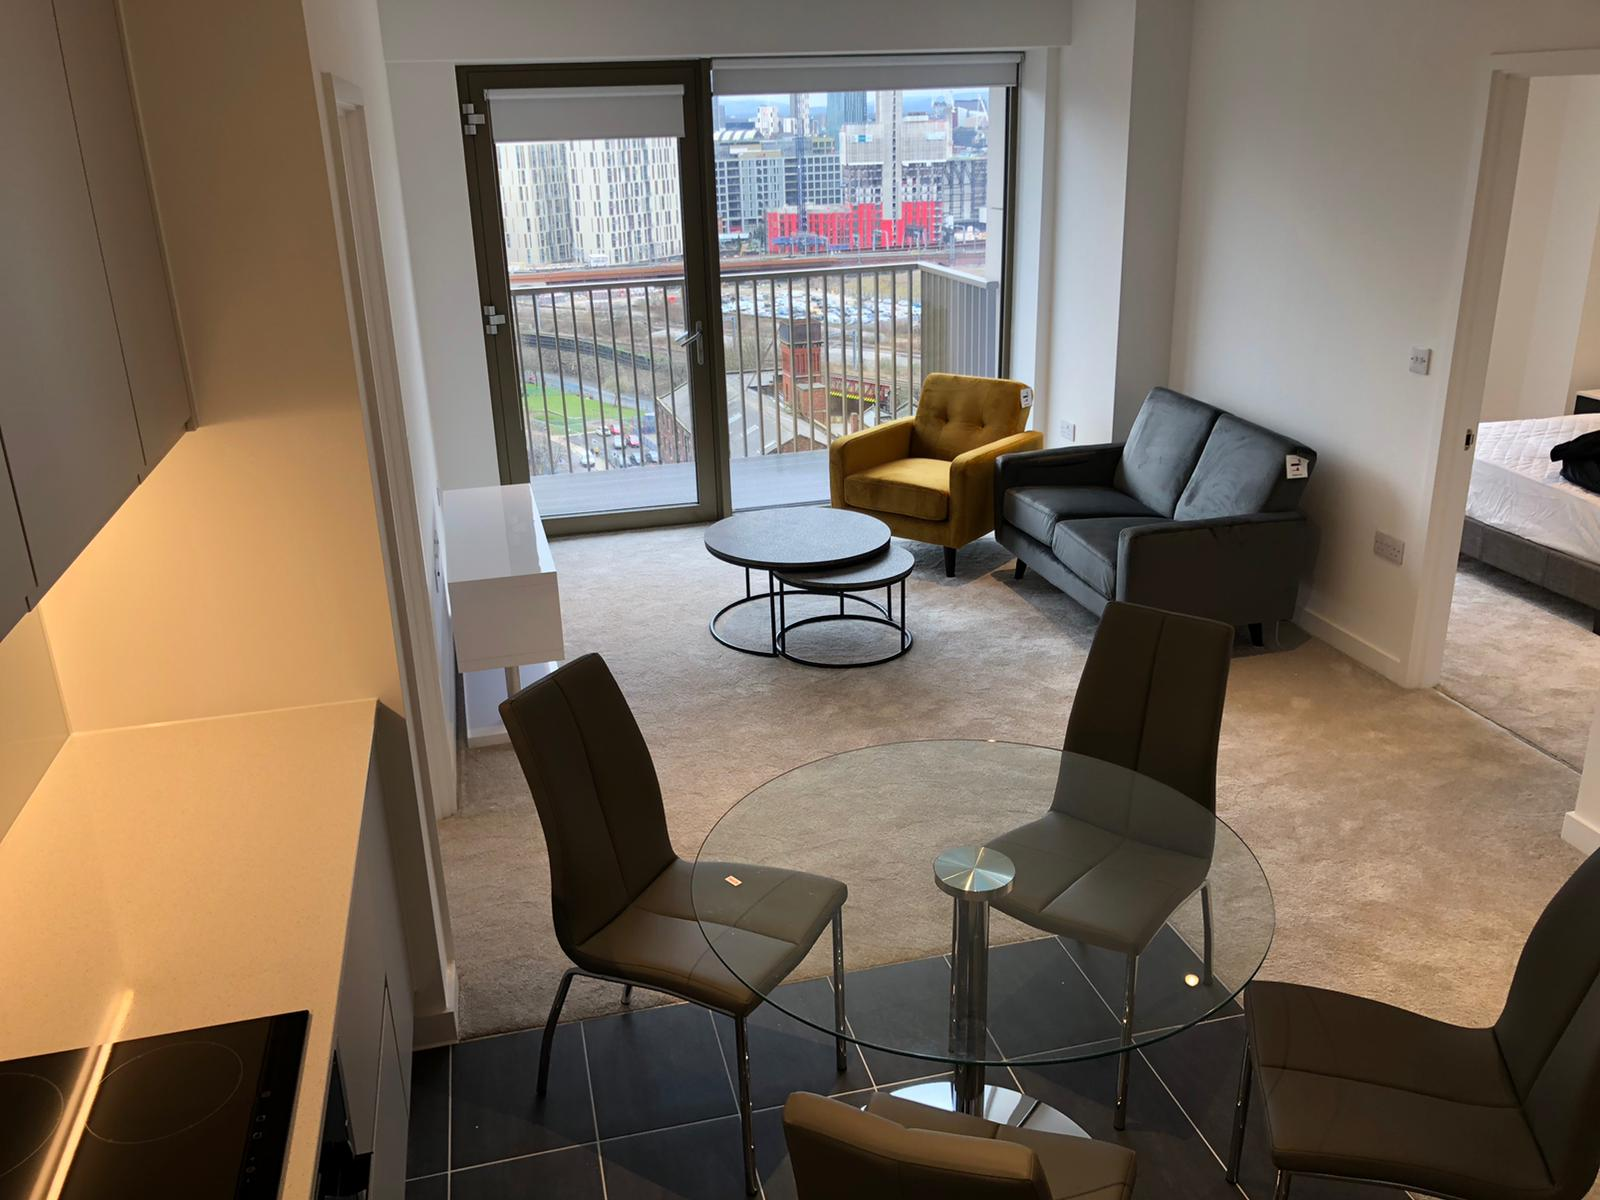 BRAND NEW! Two Bedroom Apartment on 13th Floor at Local Crescent in Salford Manchester M5